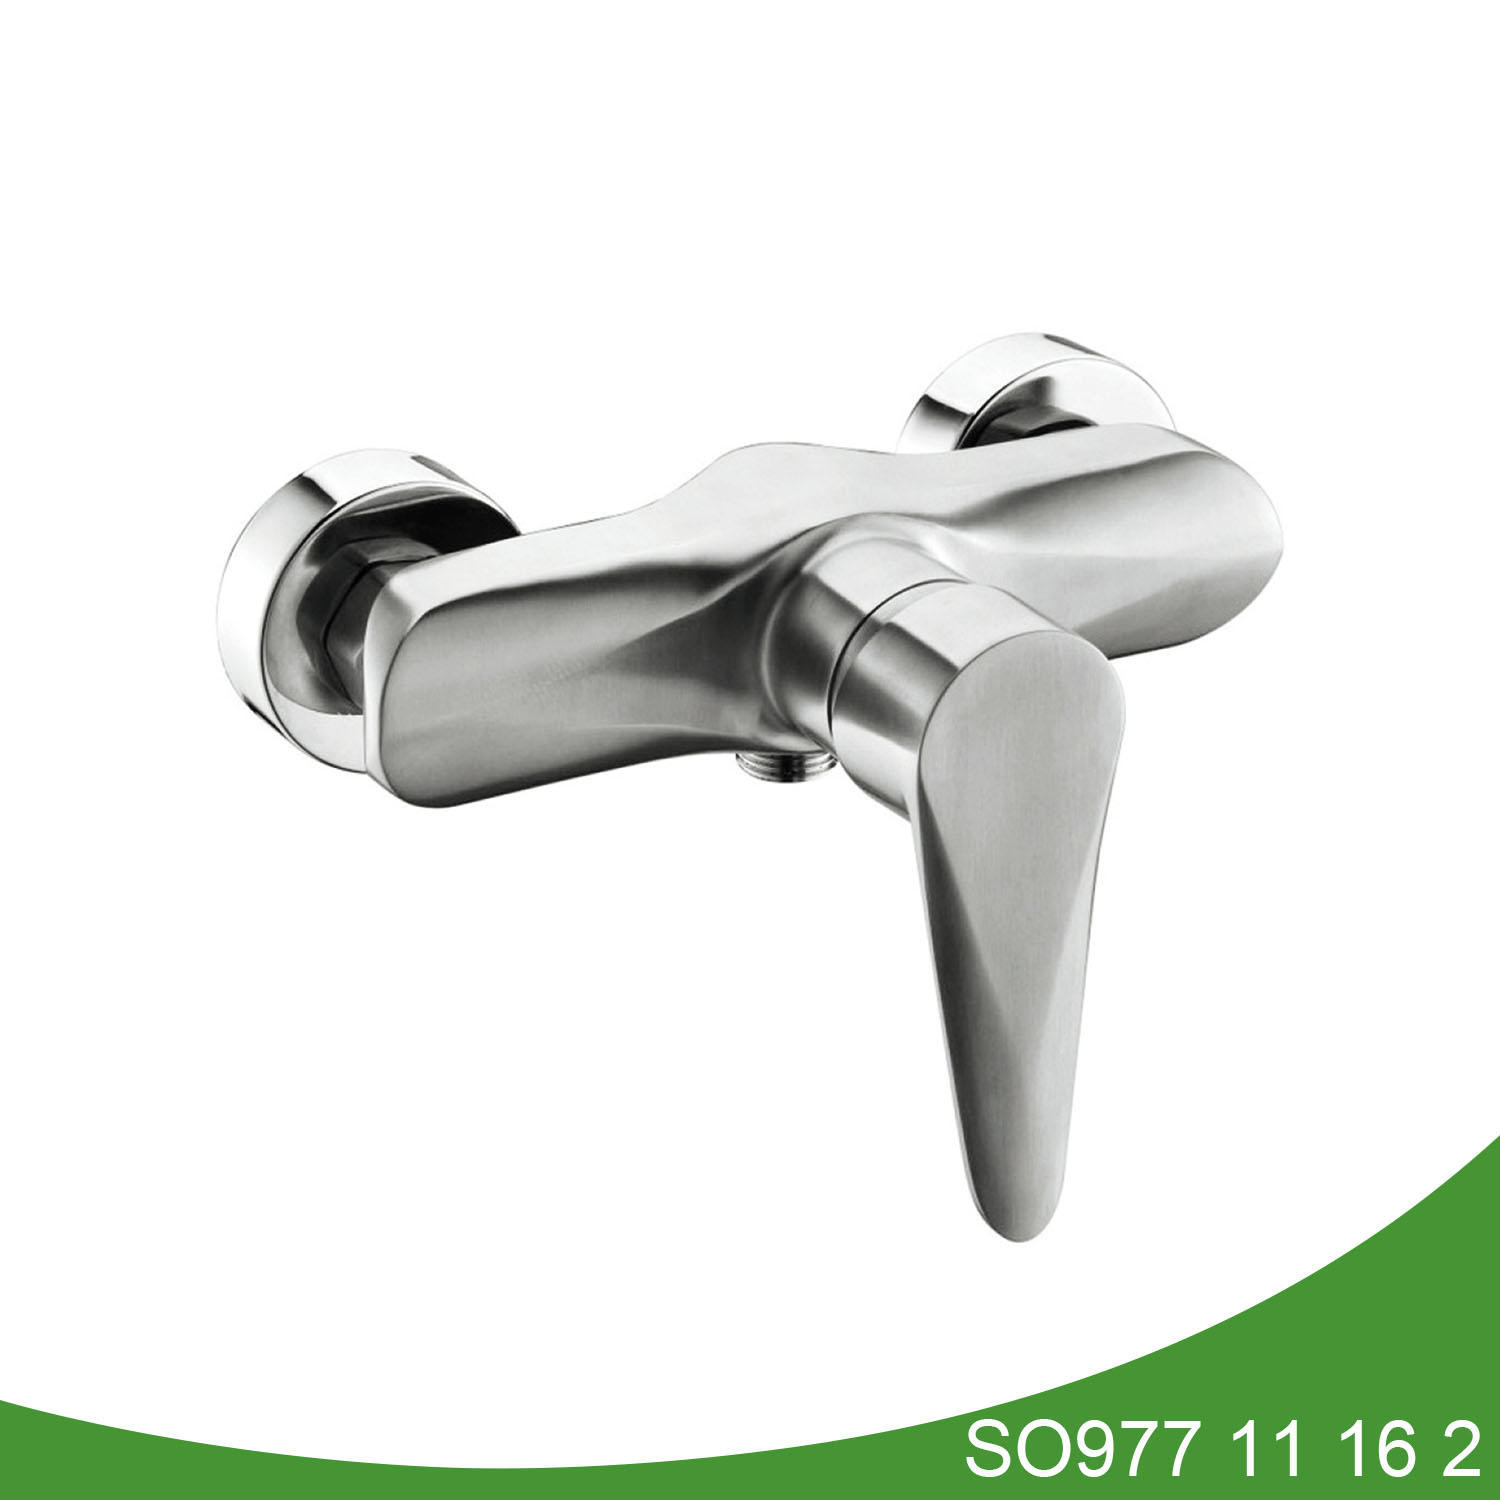 Stainless steel shower mixer SO977 11 16 2